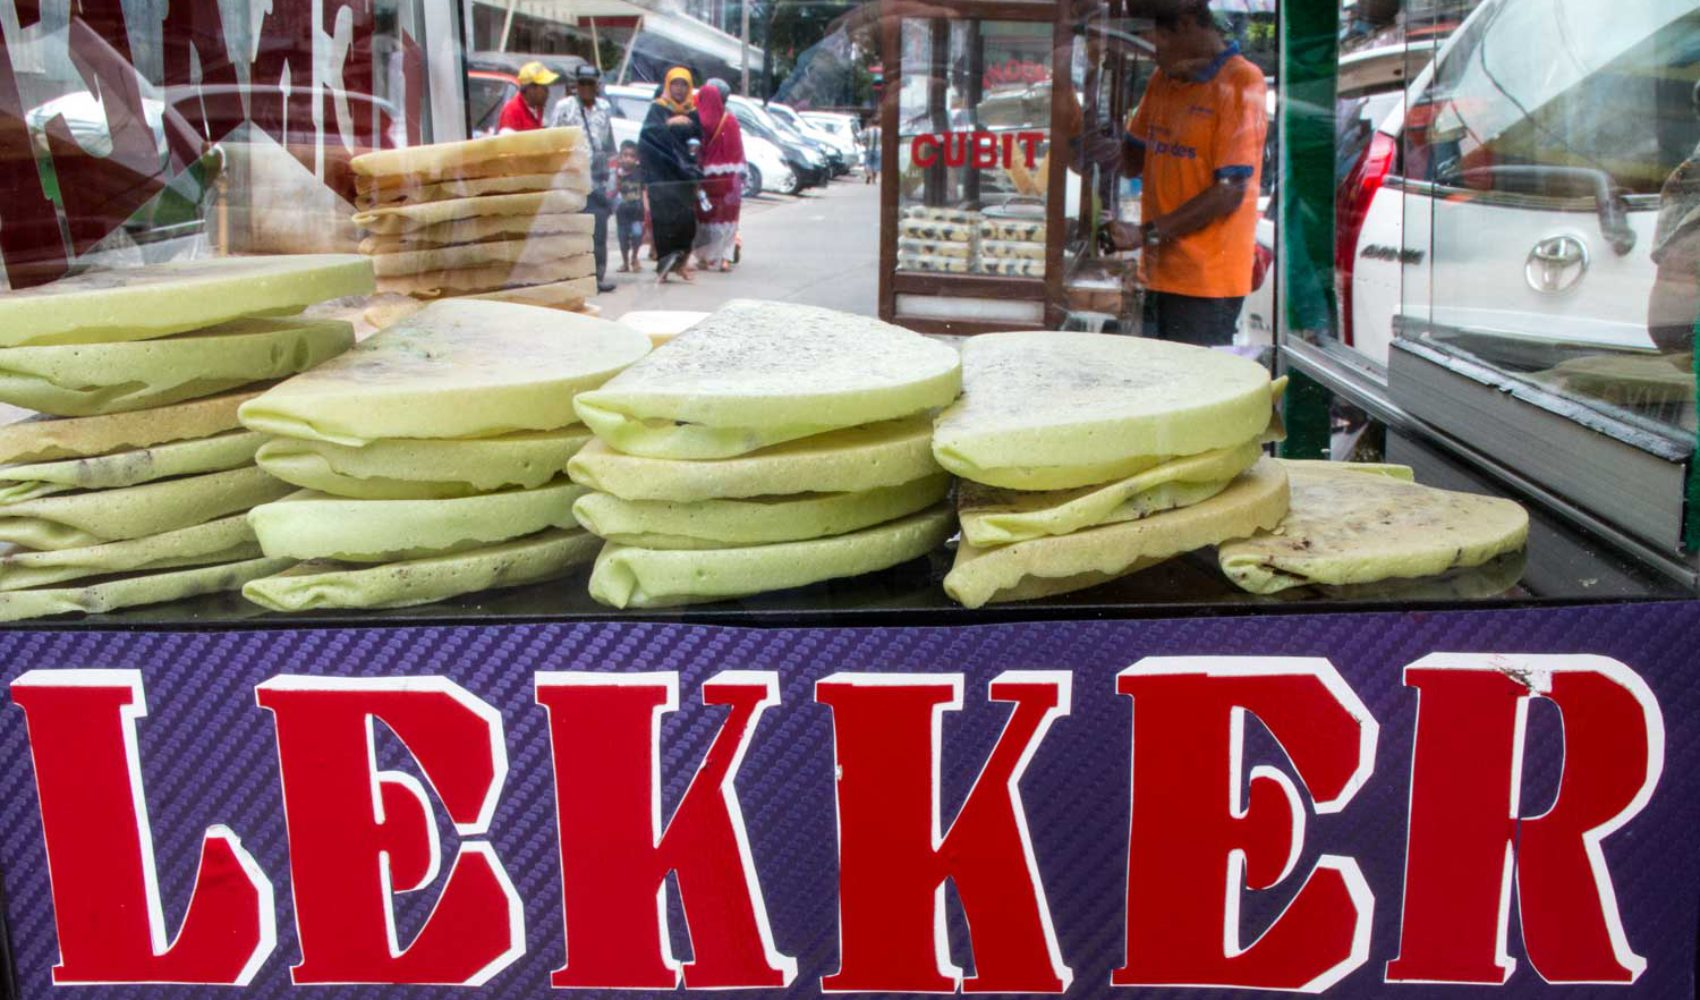 Jakarta Food Journal 5: Street Food - süße und herzhafte Snacks